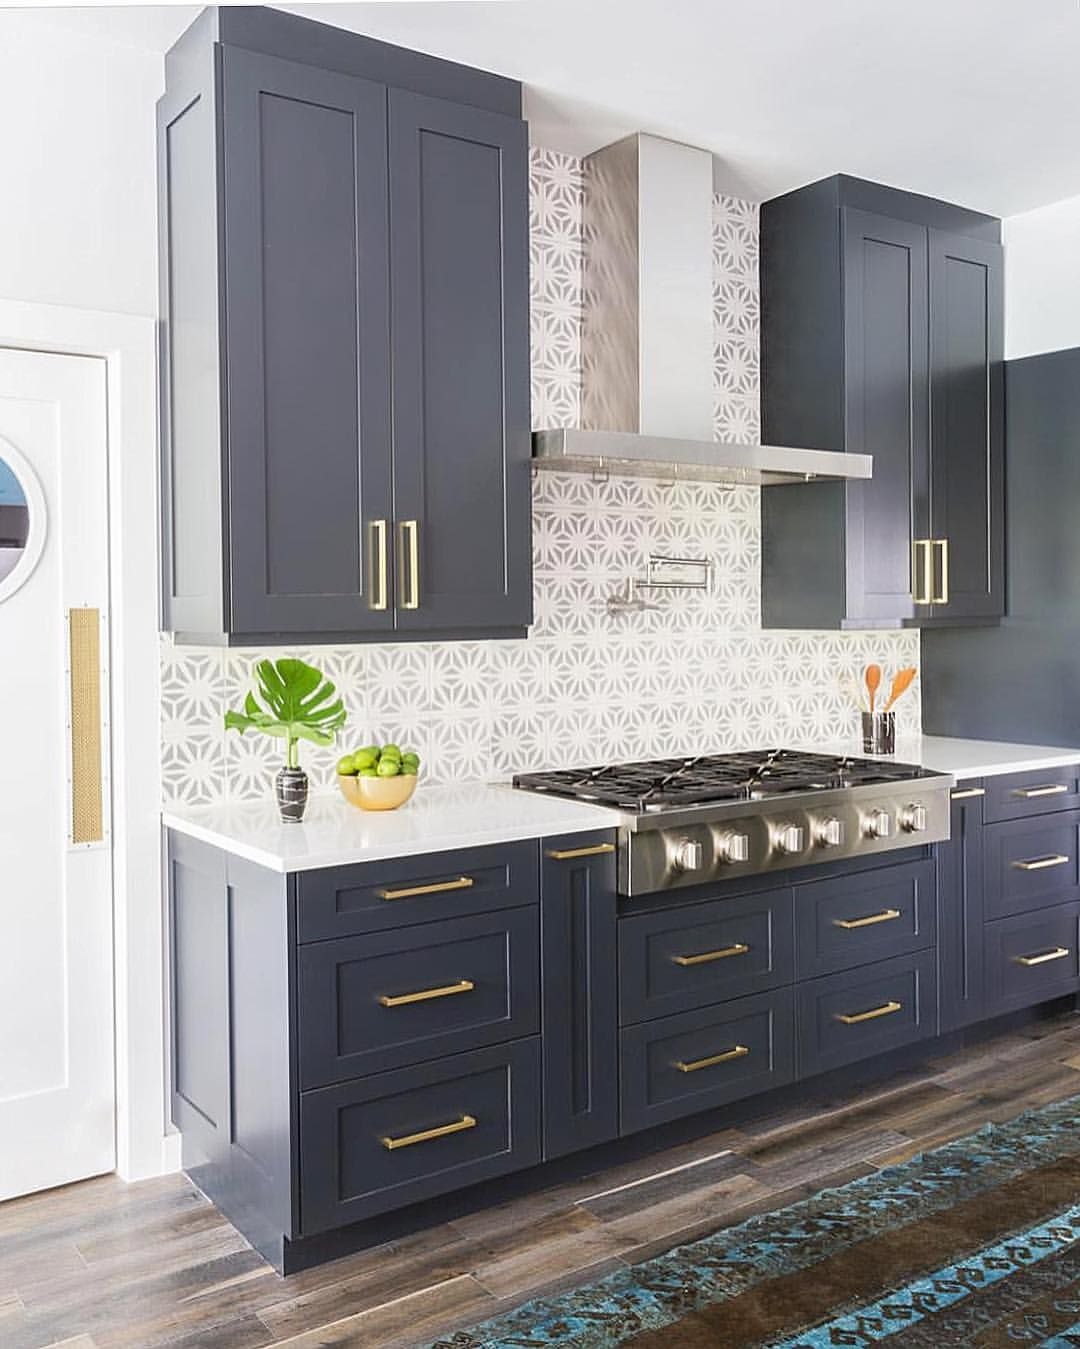 Navy Blue Cabinets, Stone Textiles Kitchen | Kitchen Design, New Kitchen Cabinets, Kitchen Renovation